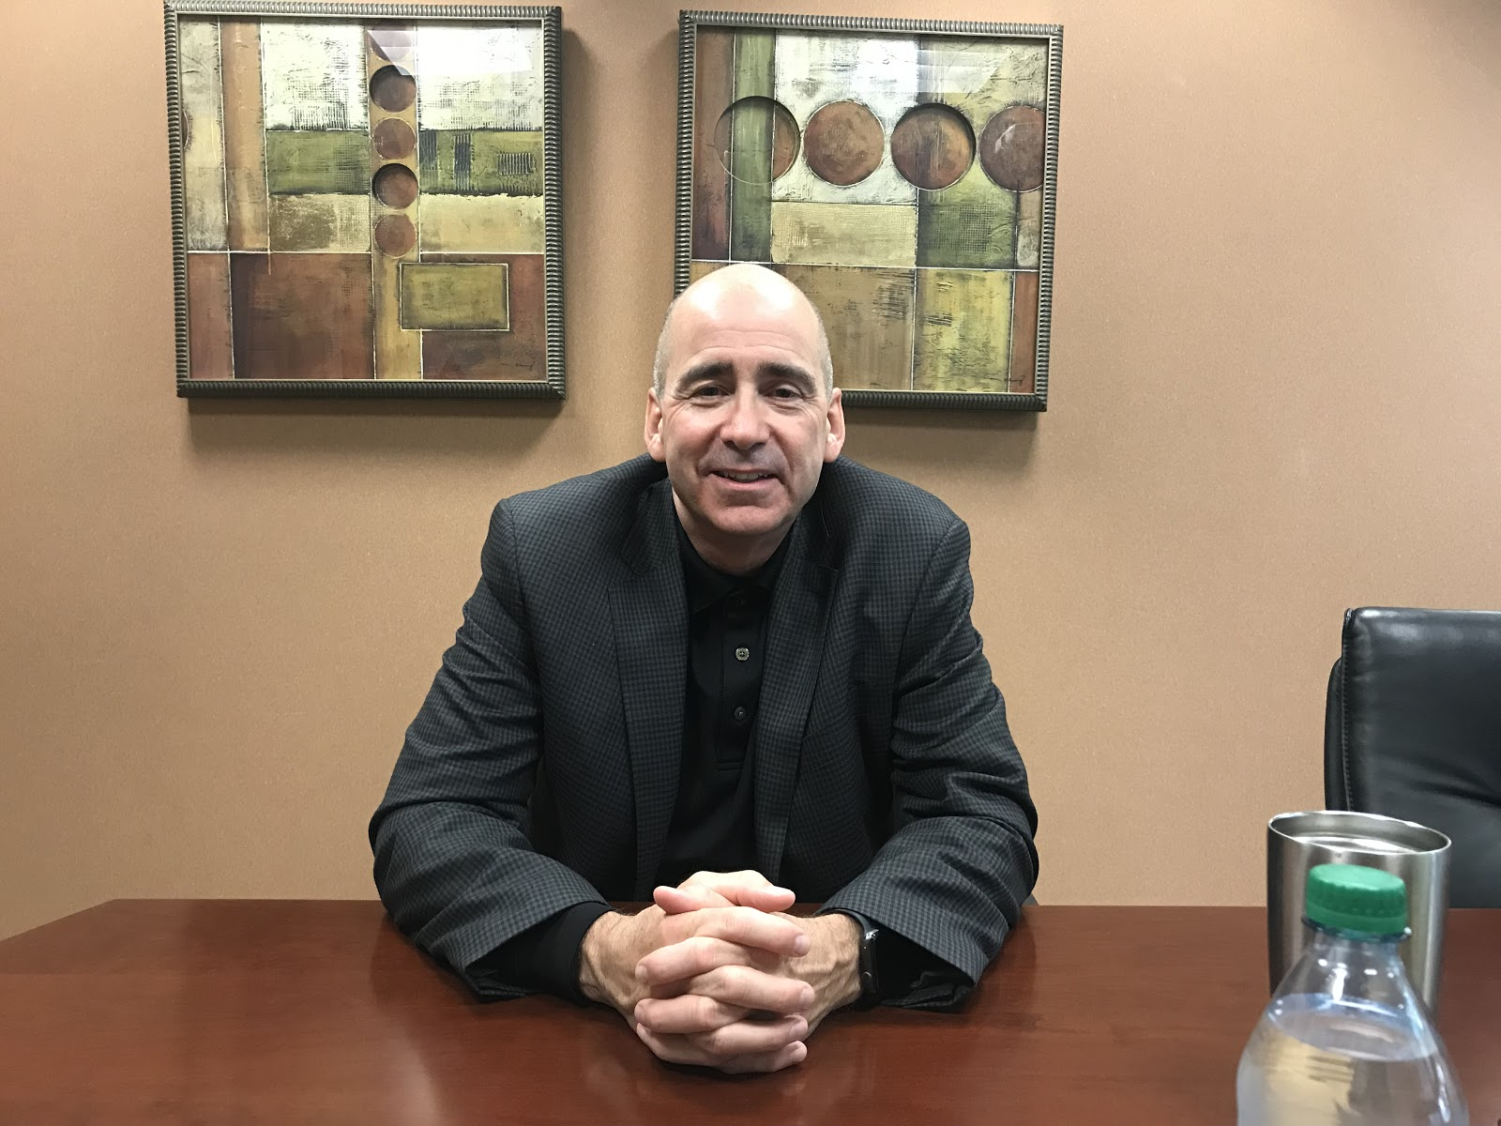 Carmel Clay Schools Superintendent Michael Beresford implements first major change in new position. Beresford has high hopes that the switch from myCCS to PowerSchool will be smooth and positive.